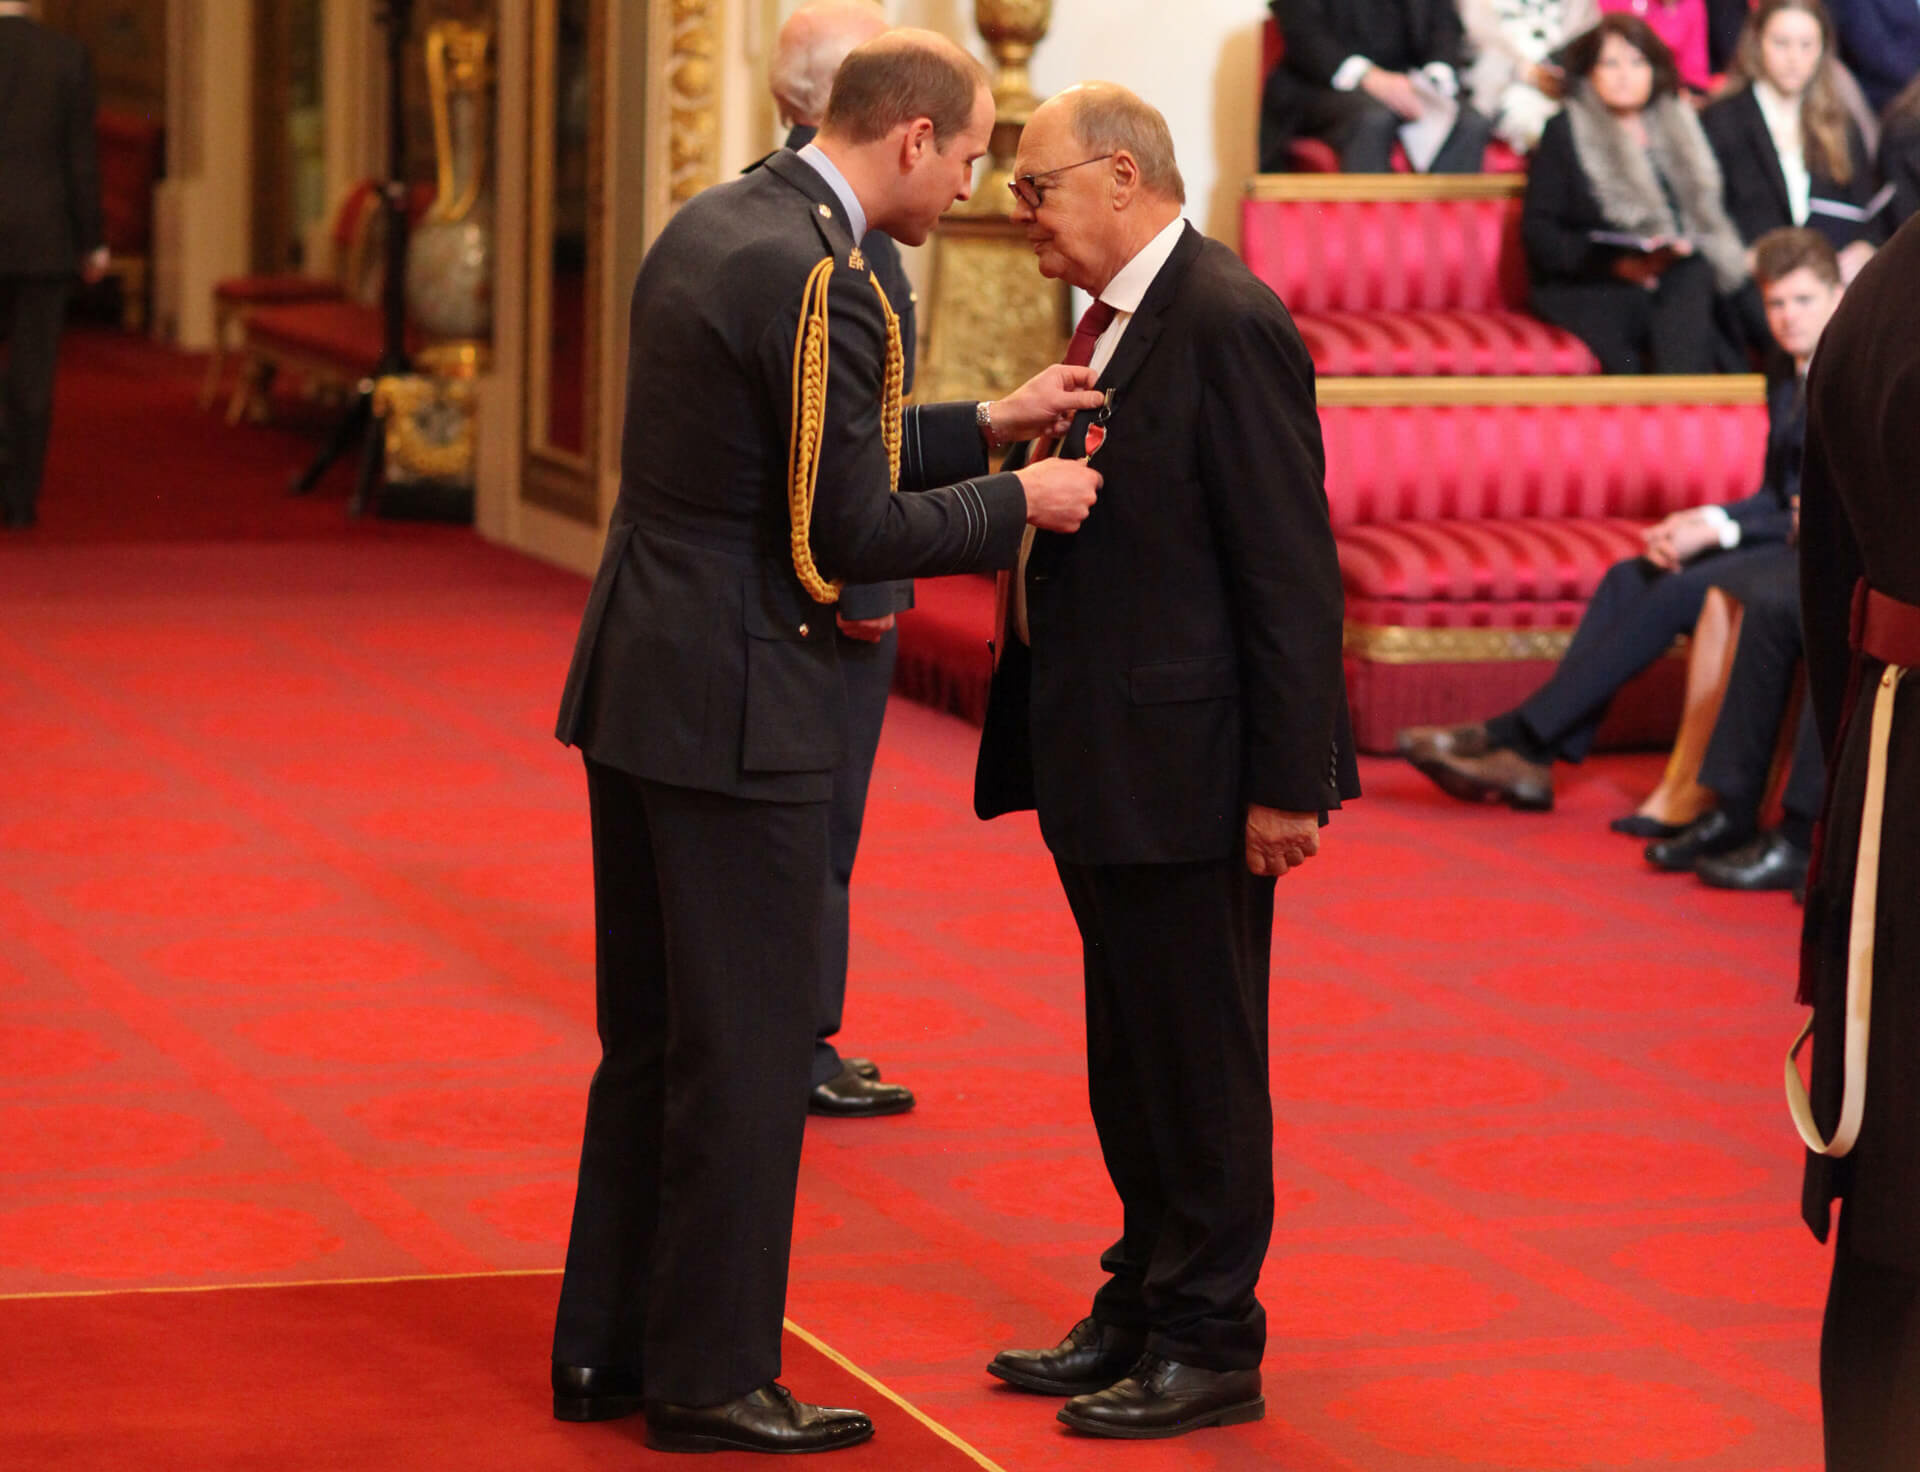 Nicholas Logsdail receives an OBE from the Queen for services to the arts